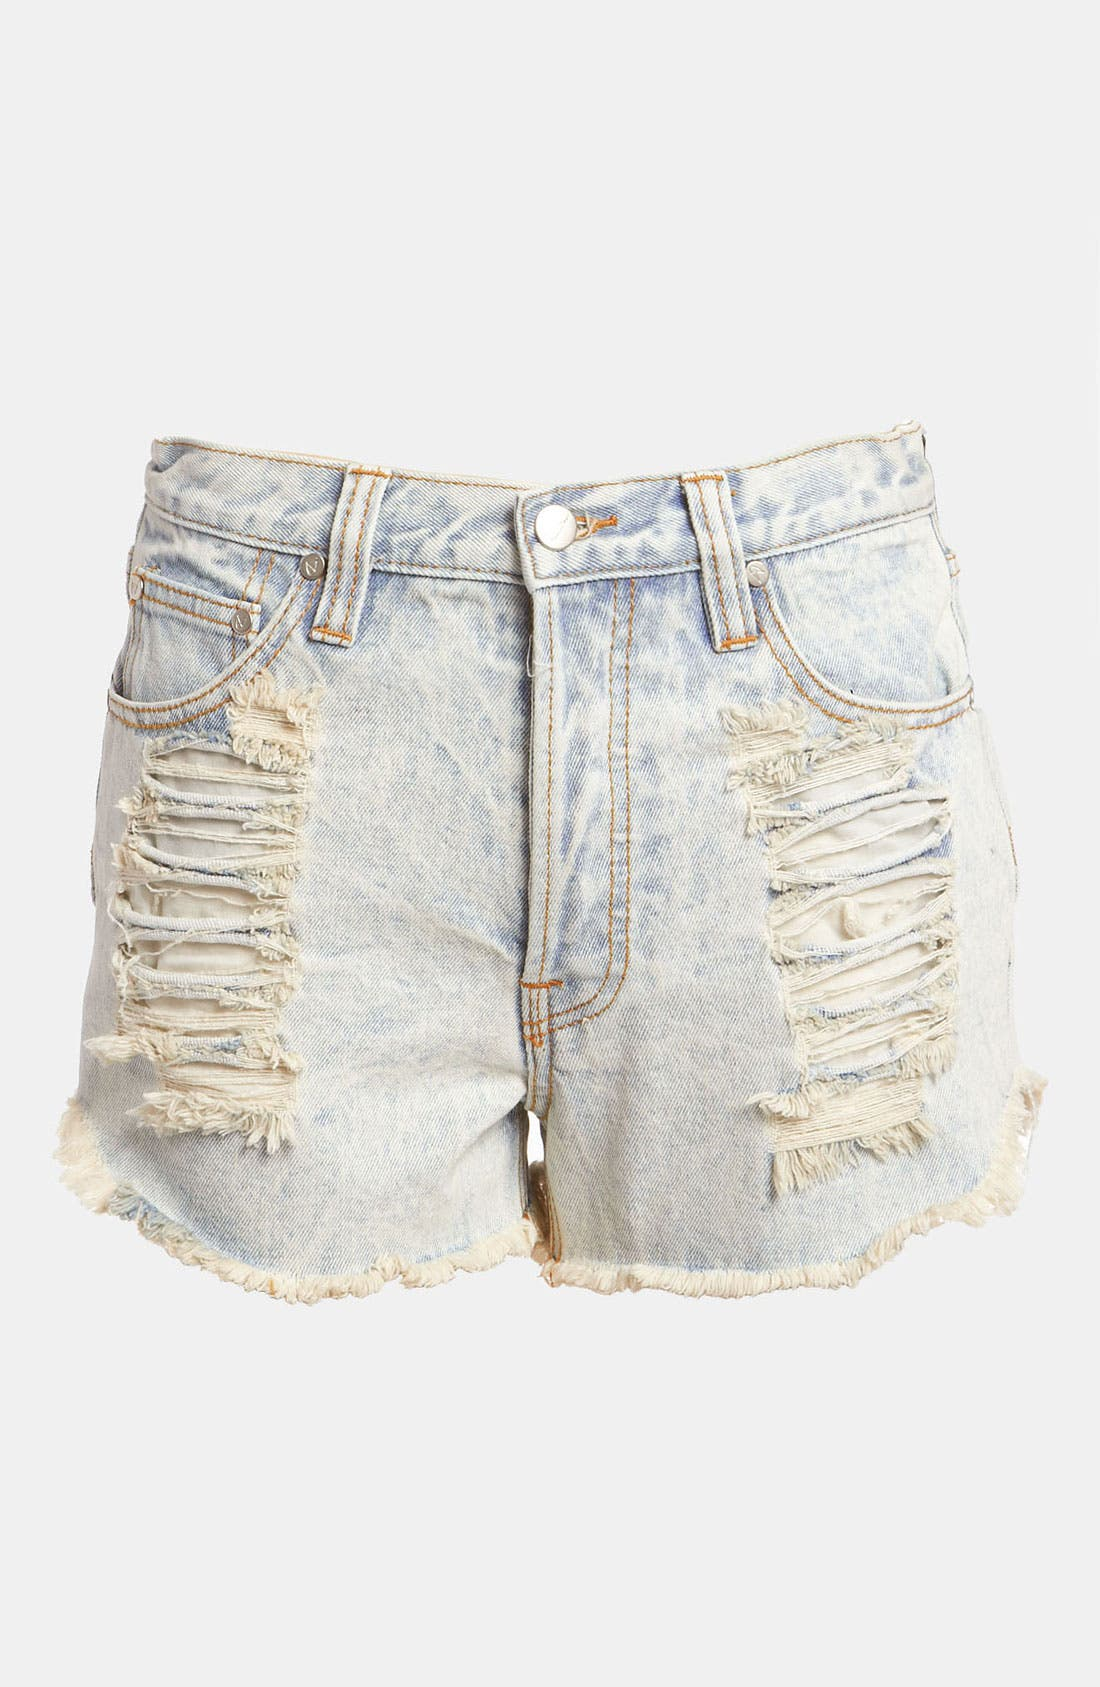 Main Image - MINKPINK 'Slasher Flick' Acid Wash Shorts